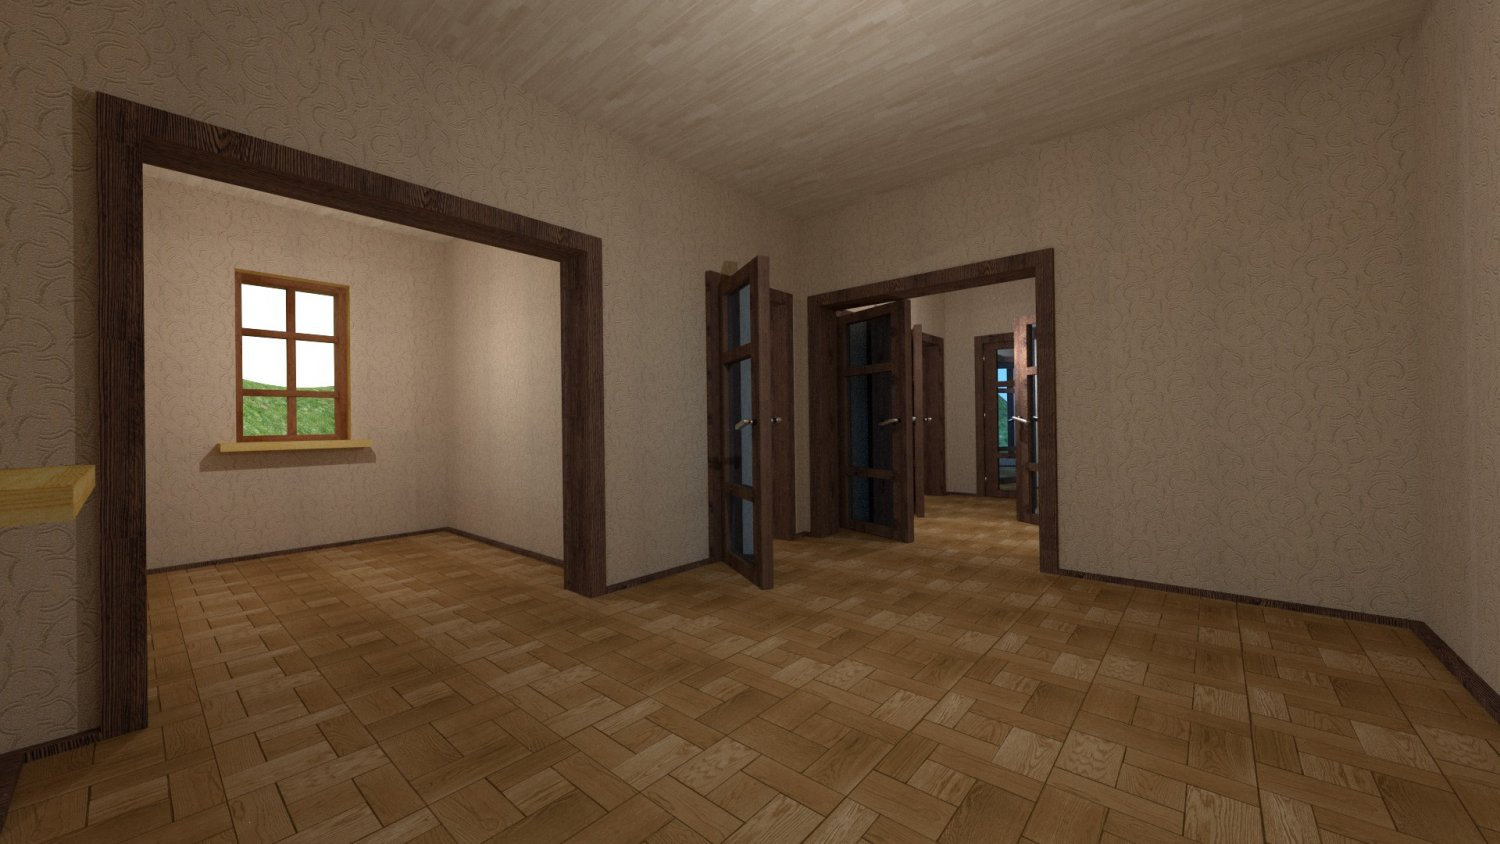 House For An Interior D 095 Empty Rooms Free 3d Models